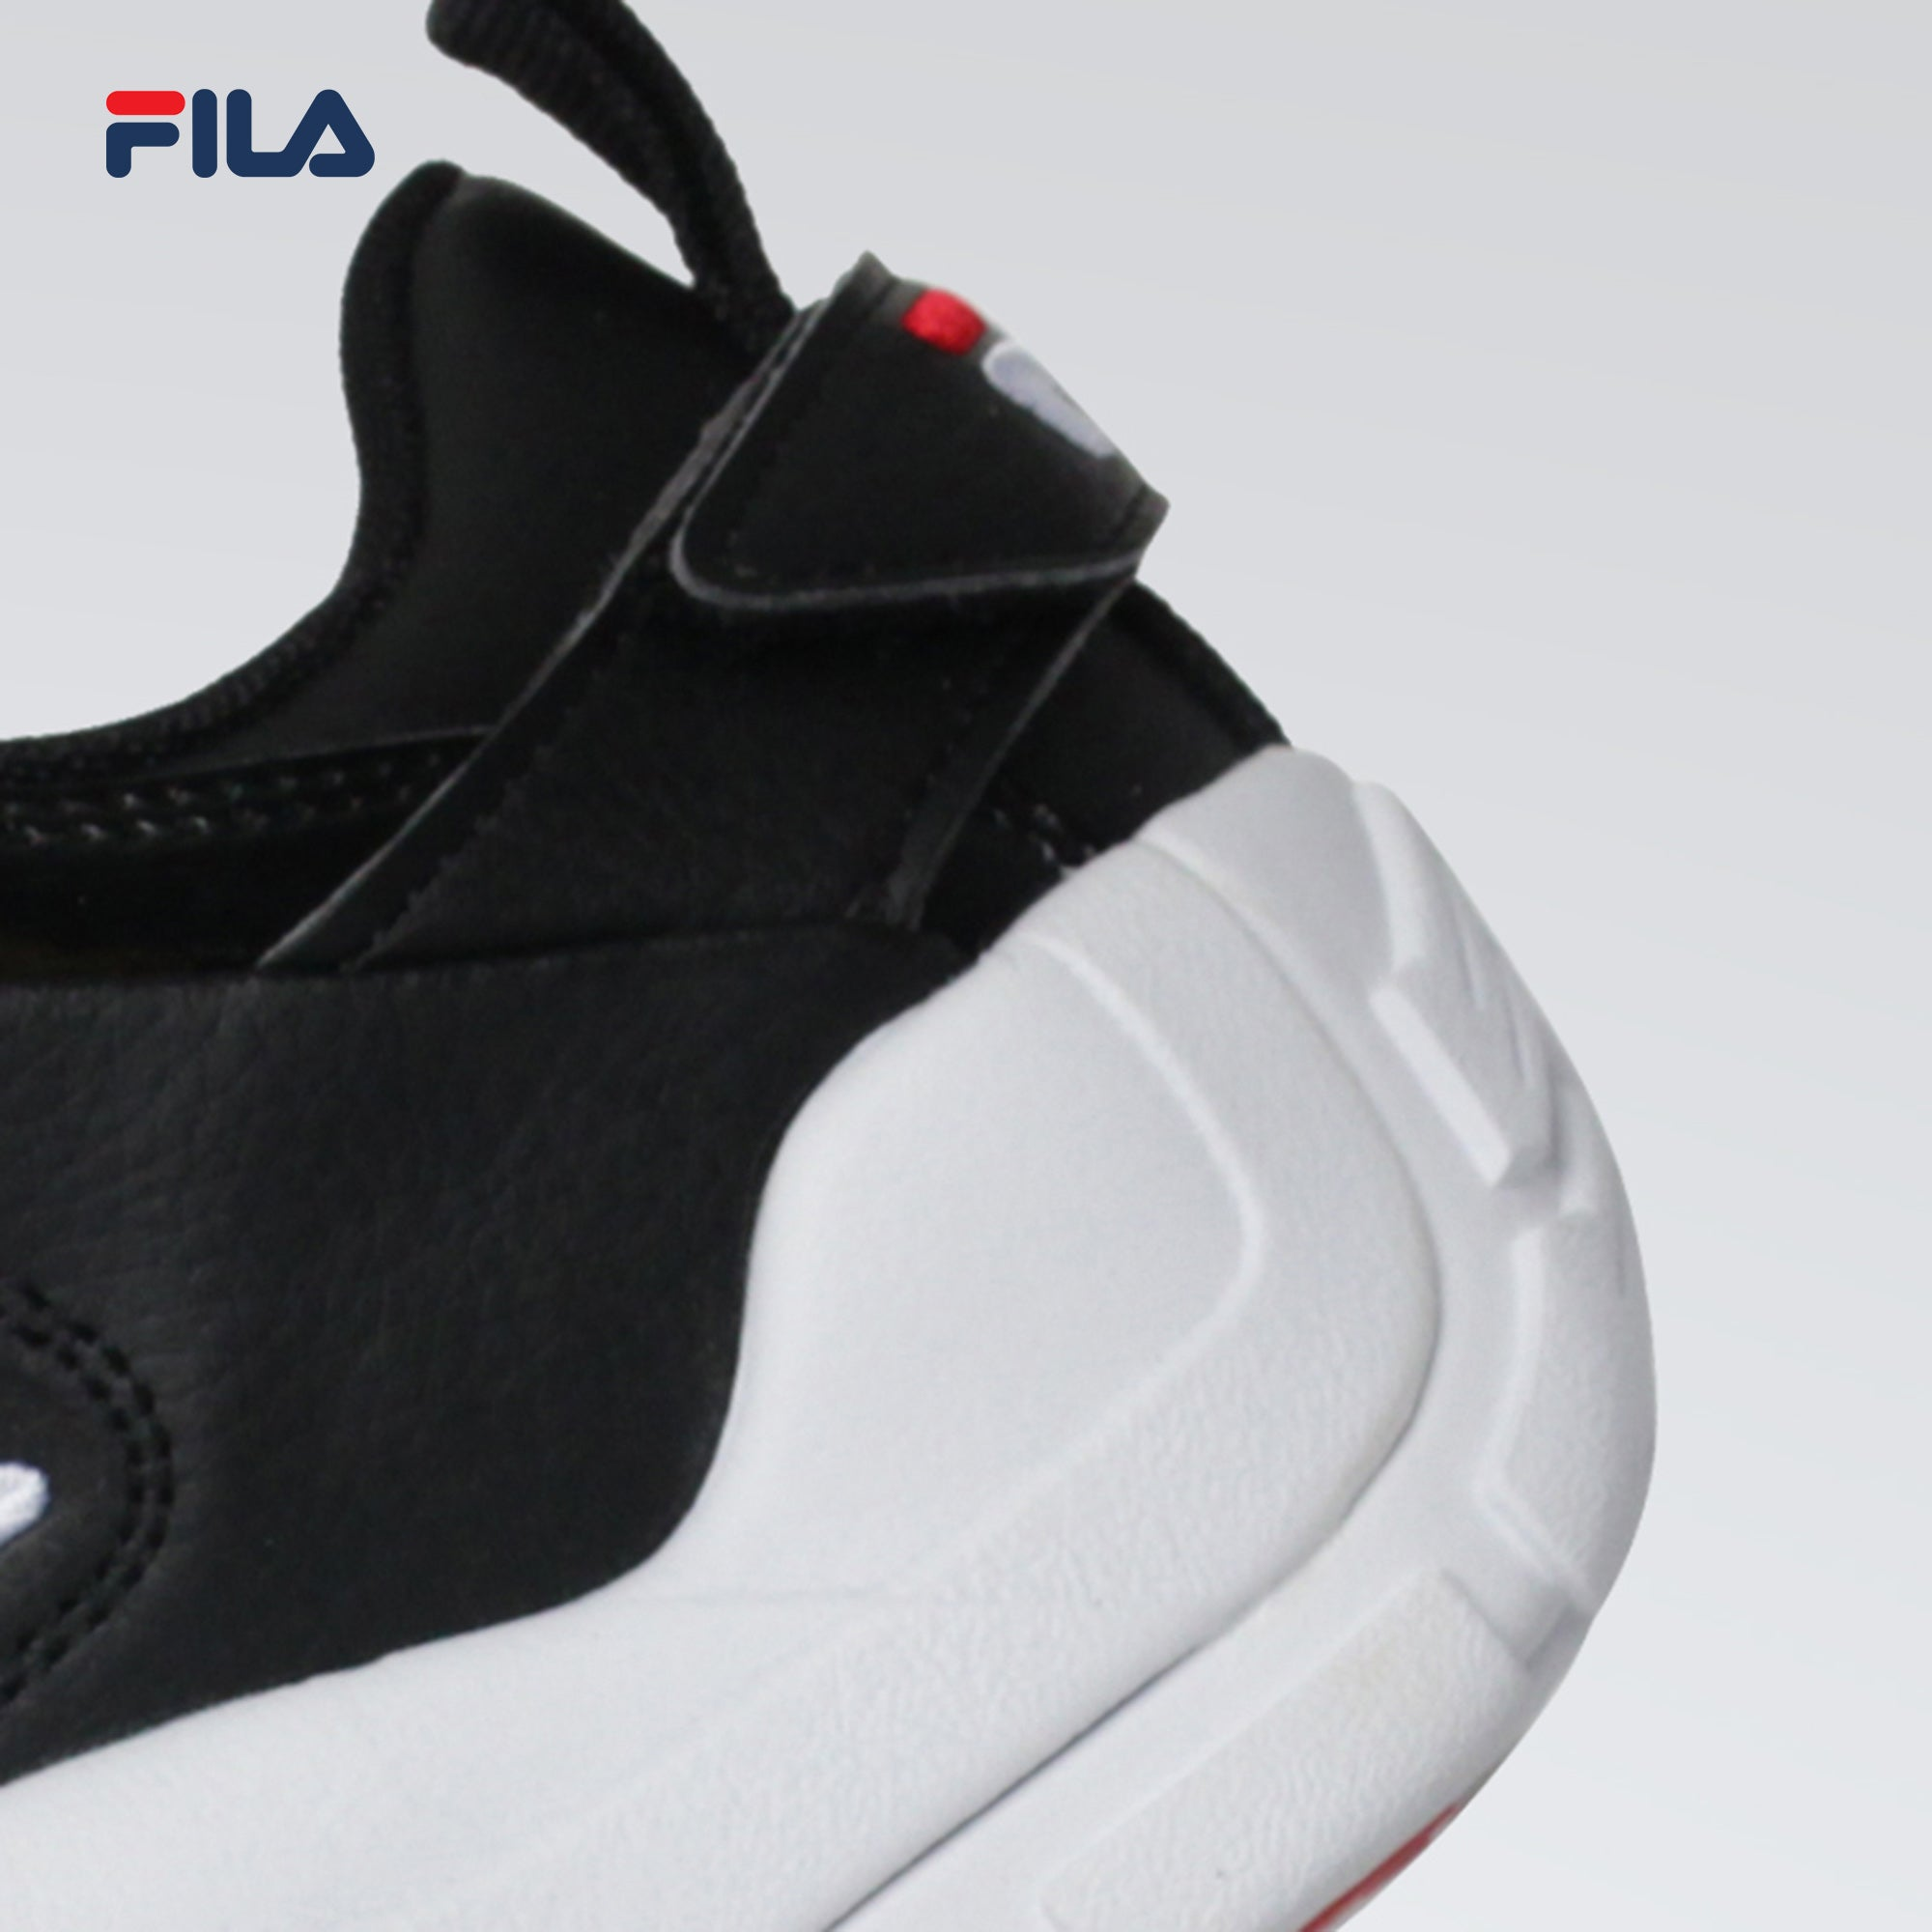 Fila Shoes Grant Hill 2 Low 014